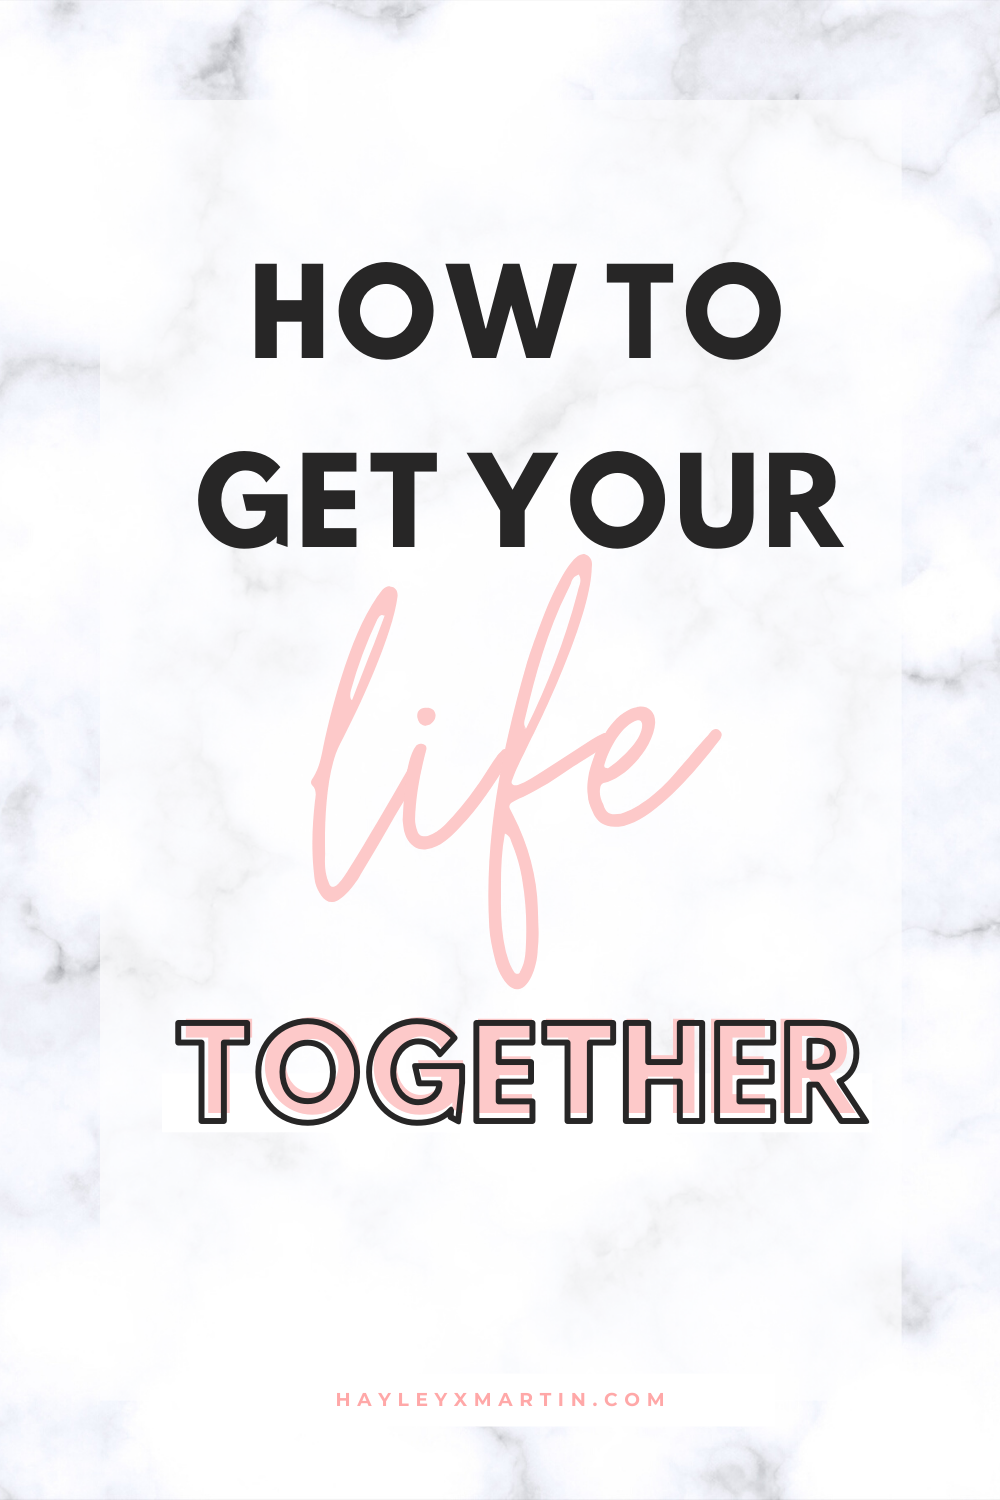 HOW TO GET YOUR LIFE TOGETHER | HAYLEYXMARTIN